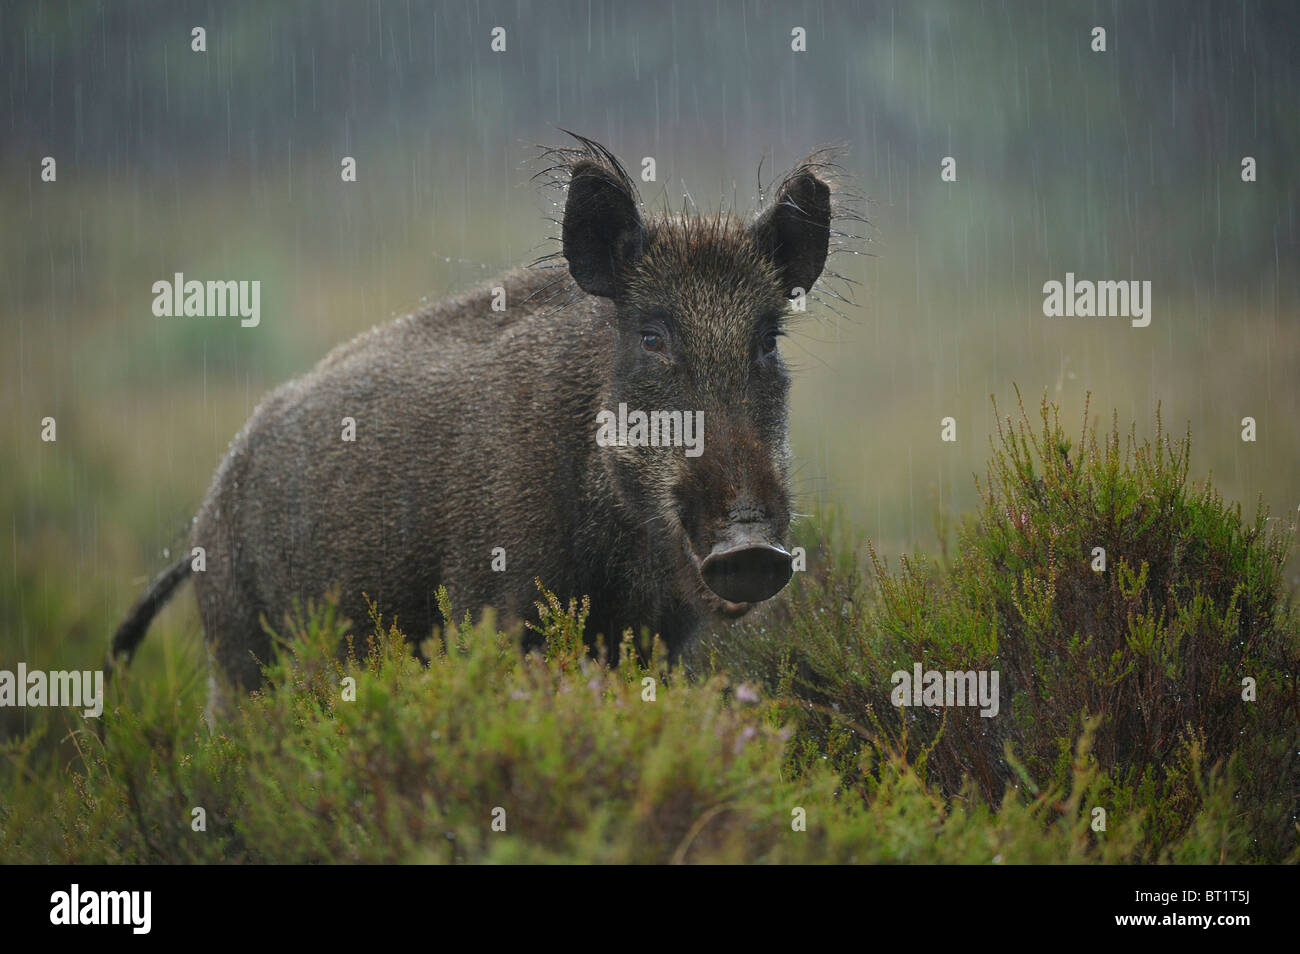 Wild Boar (Sus scrofa). Young female standing in rain, Netherlands. - Stock Image